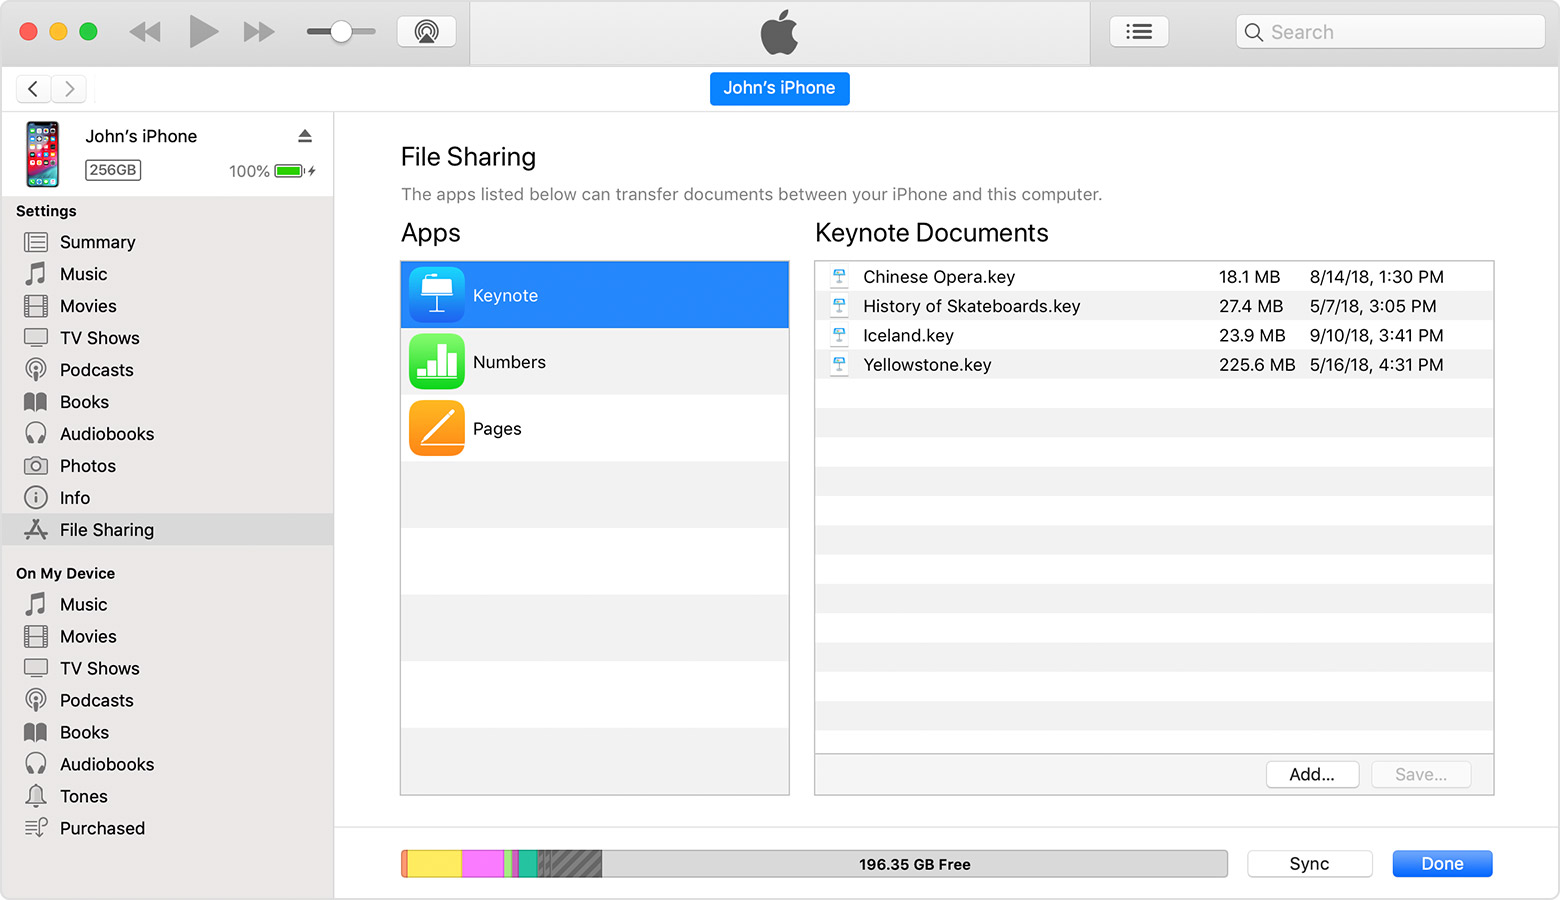 Part 2: How to access iPhone files on Mac or PC with iCloud